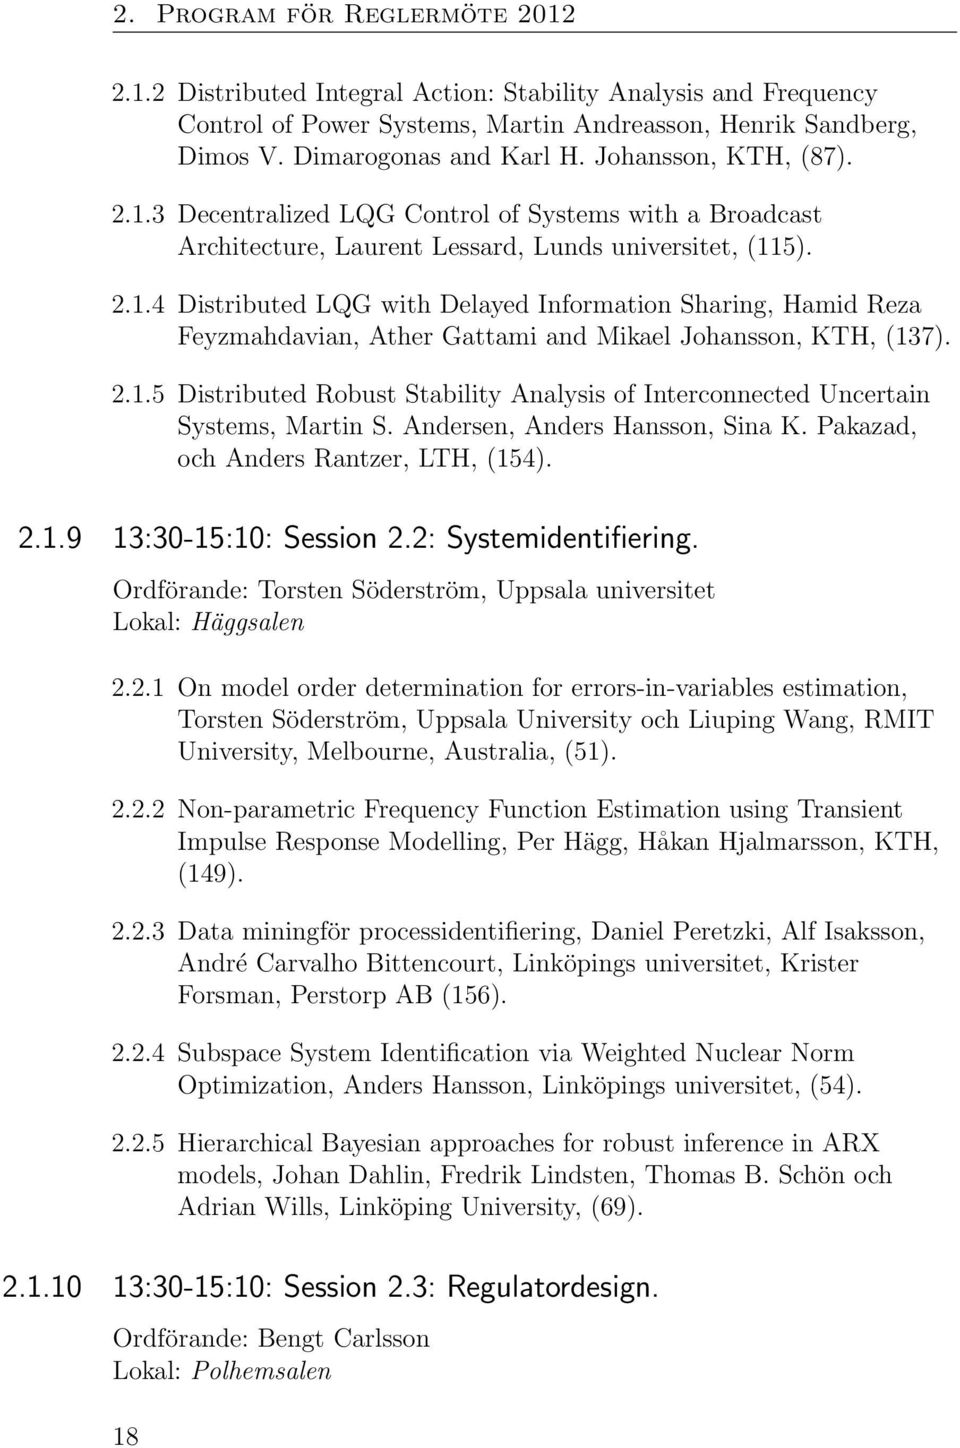 2.1.5 Distributed Robust Stability Analysis of Interconnected Uncertain Systems, Martin S. Andersen, Anders Hansson, Sina K. Pakazad, och Anders Rantzer, LTH, (154). 2.1.9 13:30-15:10: Session 2.